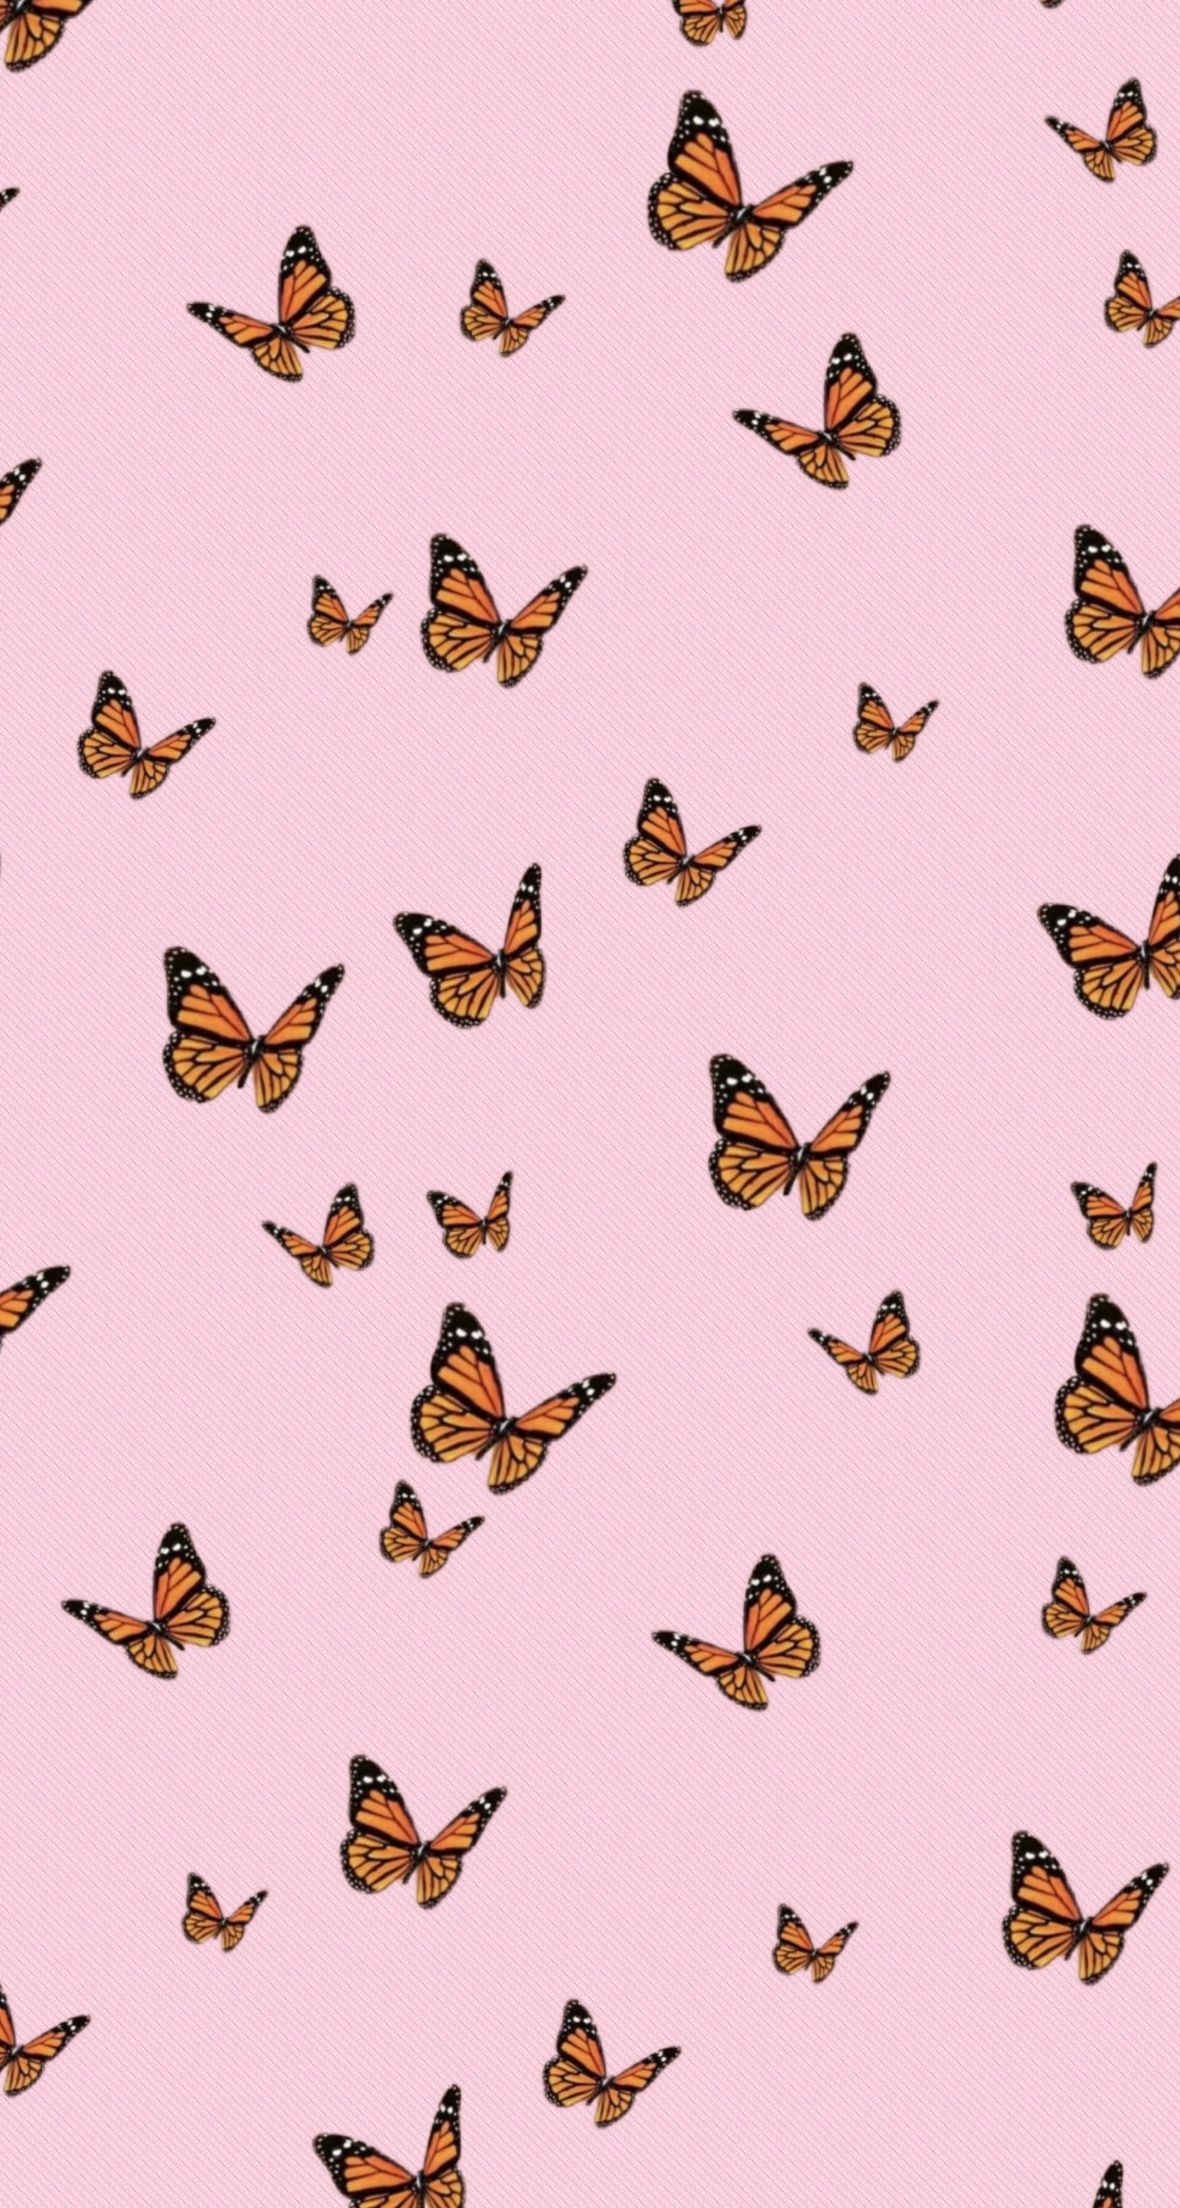 Aesthetic Butterfly Wallpaper Pink